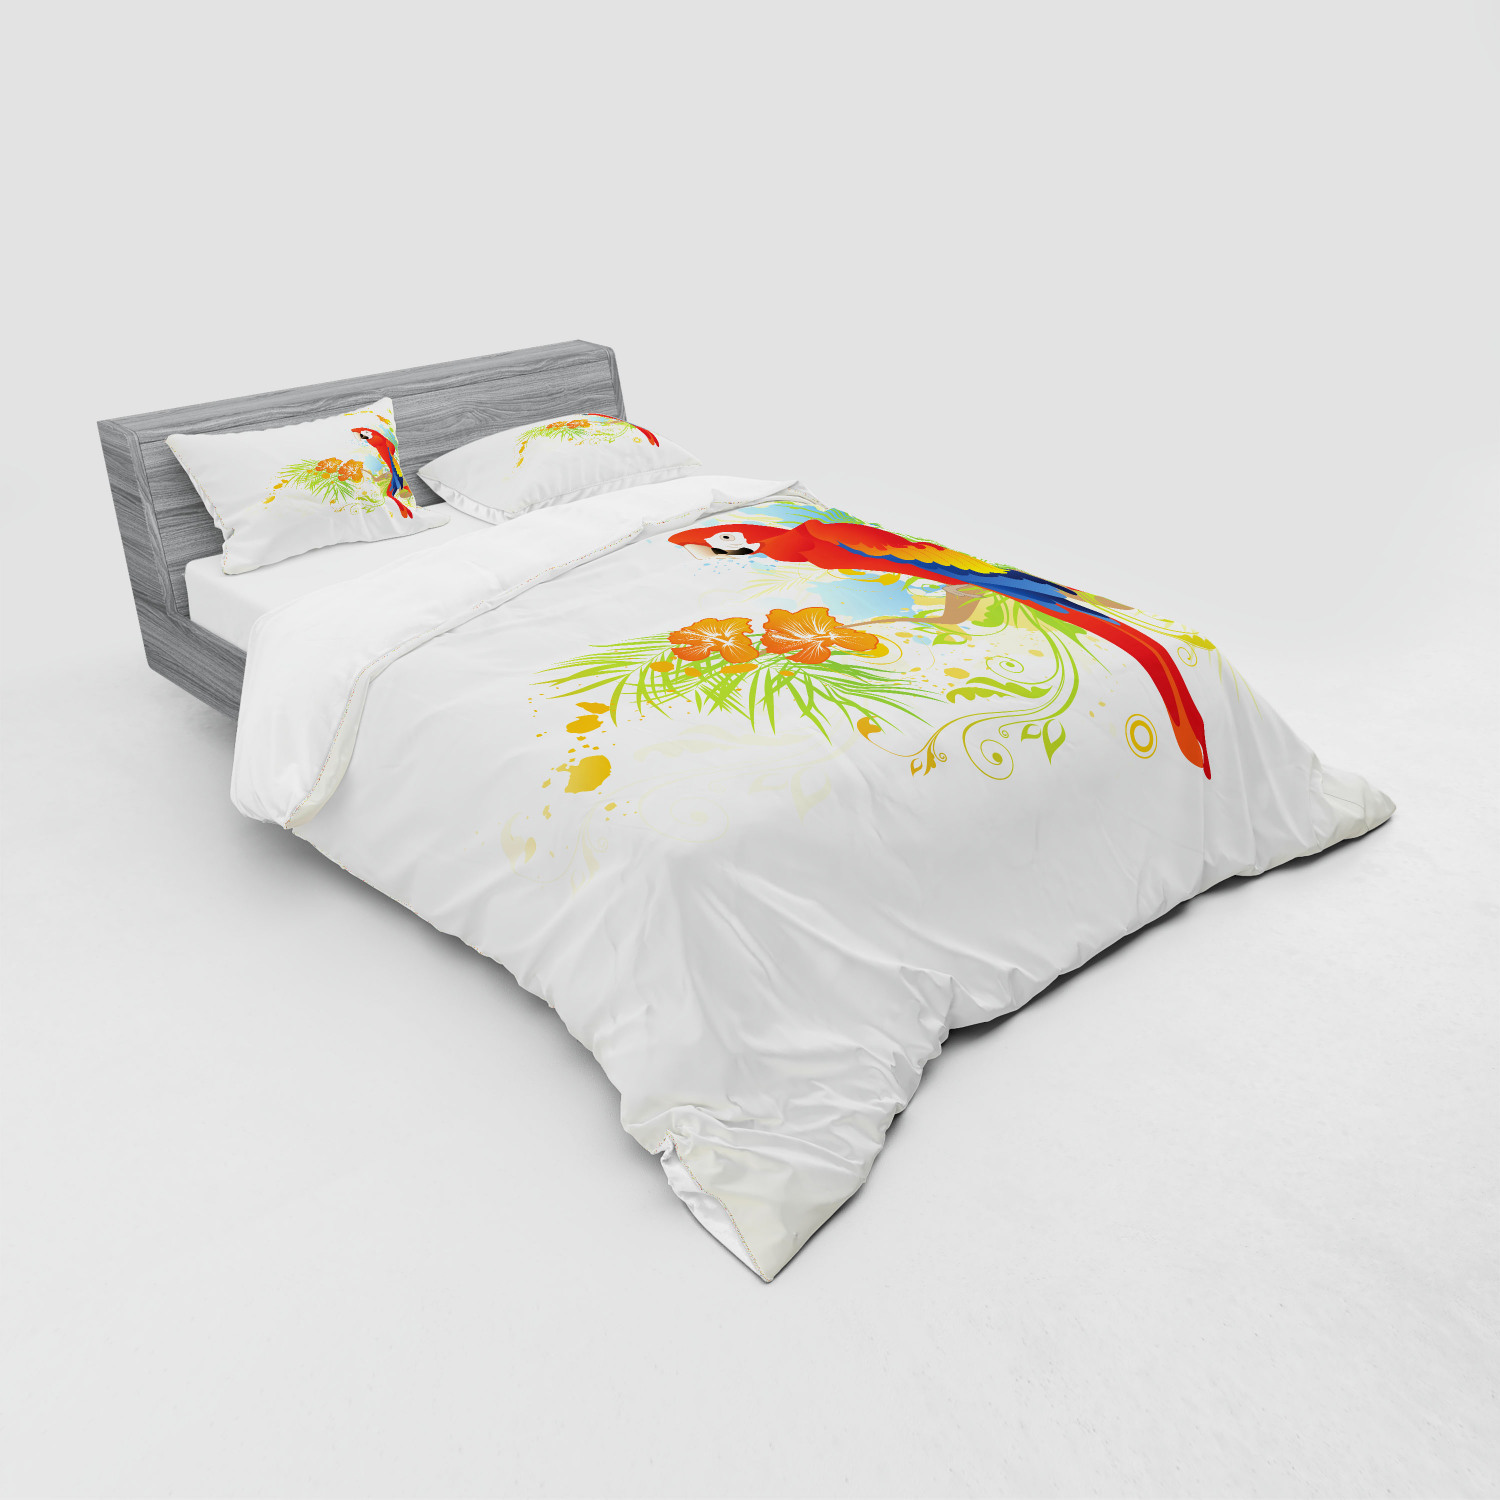 thumbnail 135 - Ambesonne Summer Bedding Set Duvet Cover Sham Fitted Sheet in 3 Sizes